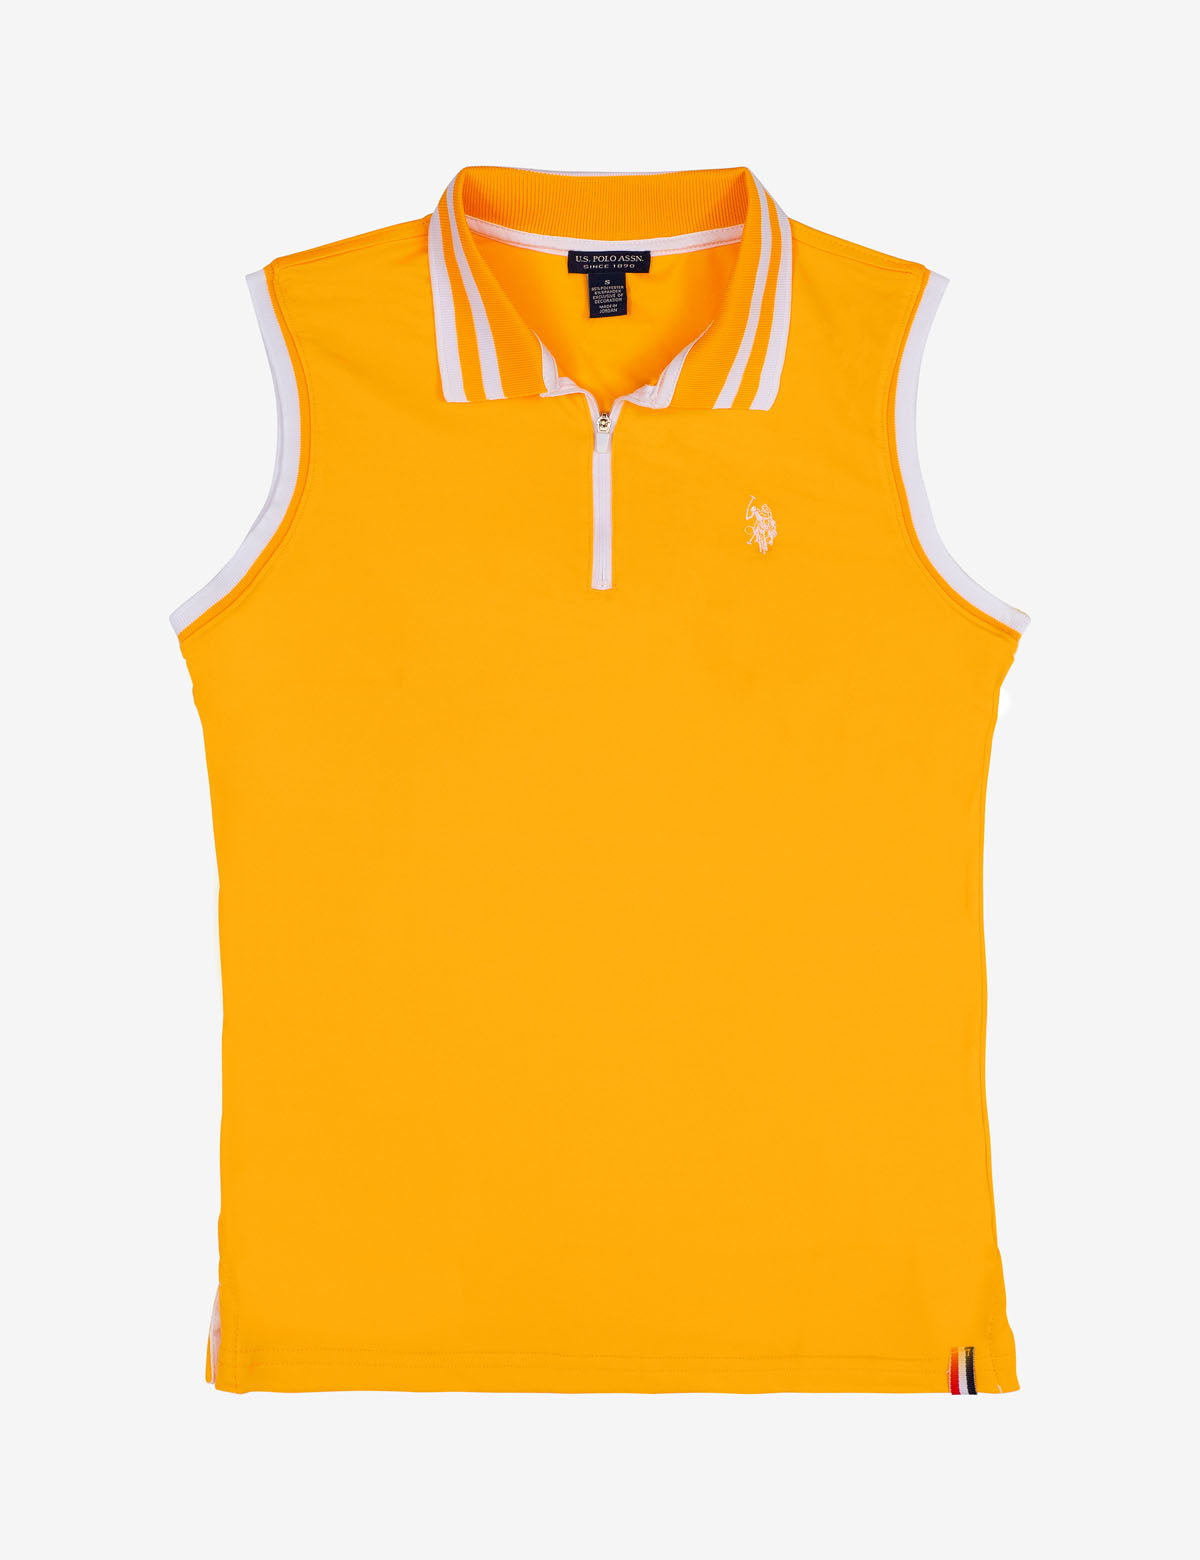 ZIP UP SLEEVELESS SOLID POLO SHIRT - U.S. Polo Assn.